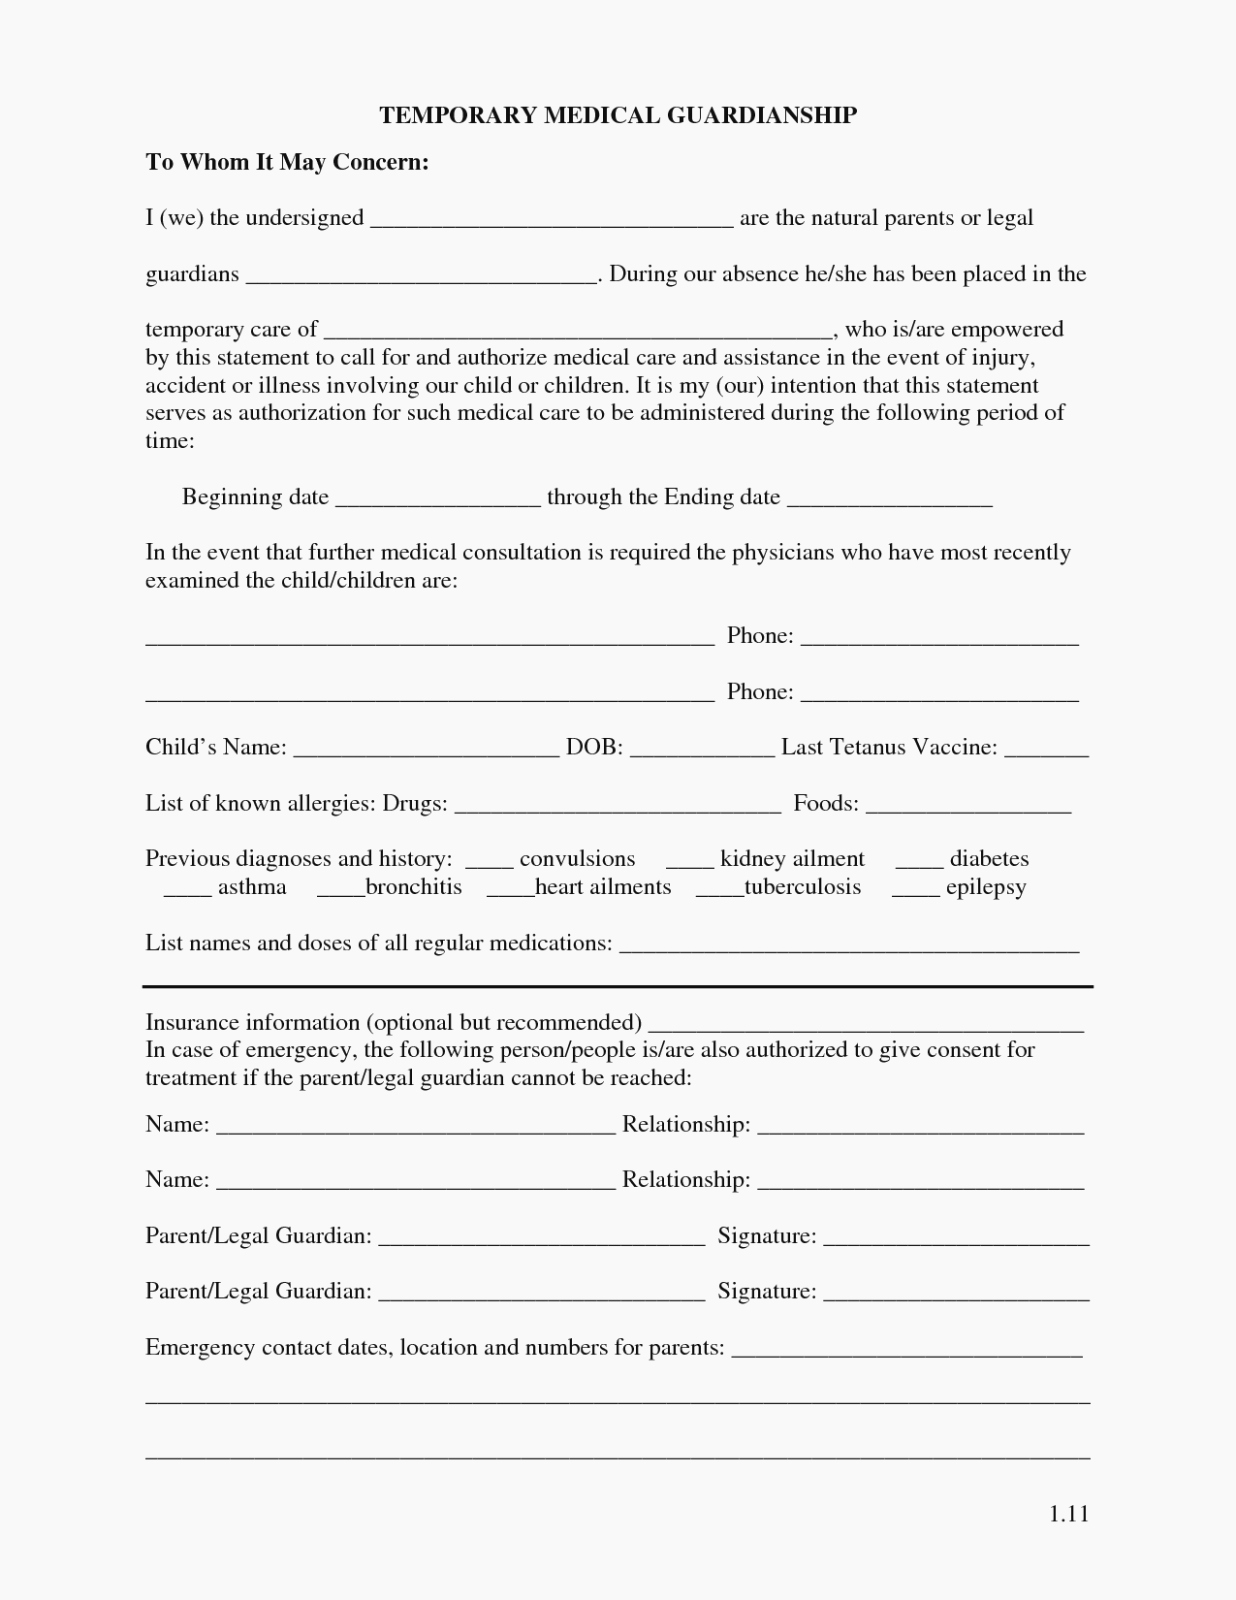 Free Printable Guardianship forms Luxury attending Legal Temporary Custody